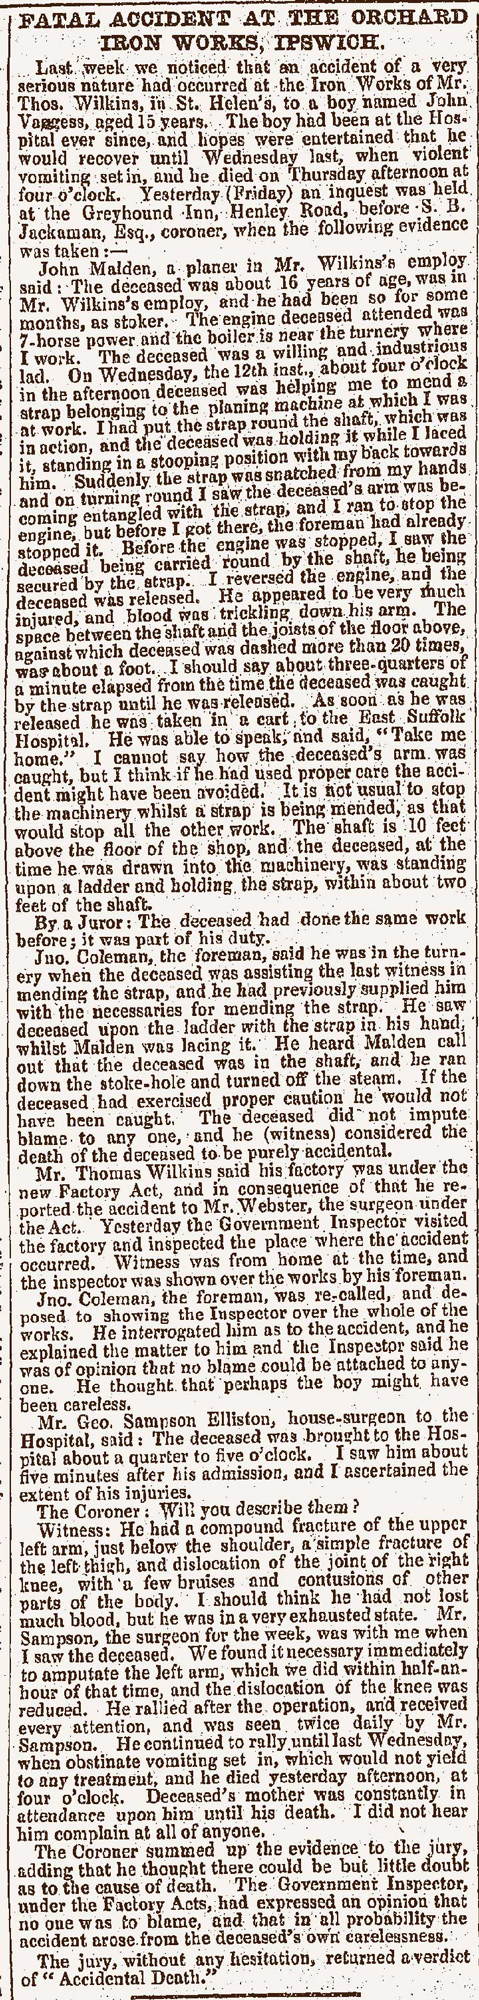 Newspaper report of fatal accident at iron works